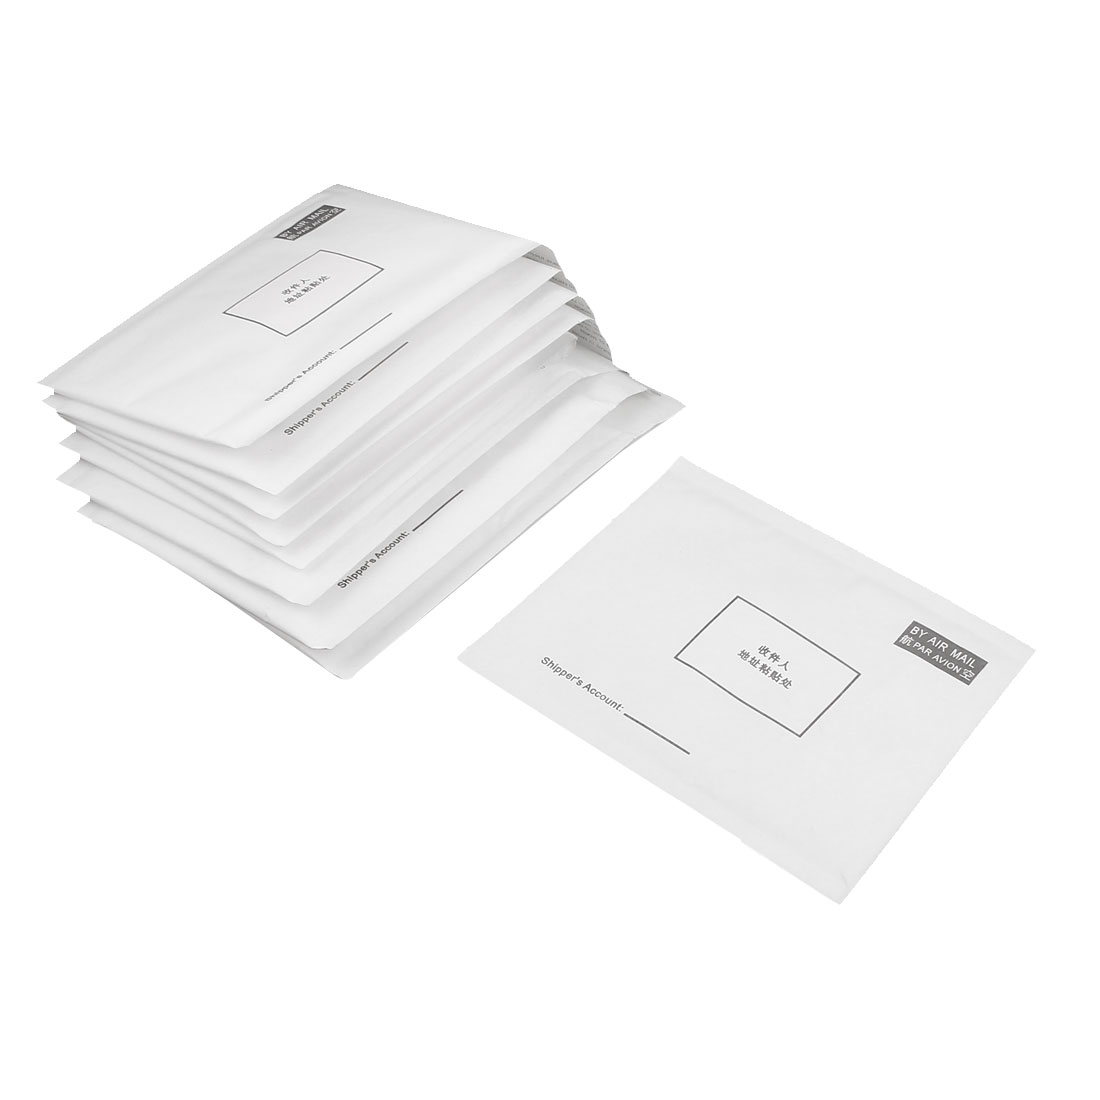 10 Pcs White Paper Rectangle Shaped Letter Envelopes 18 x 15cm